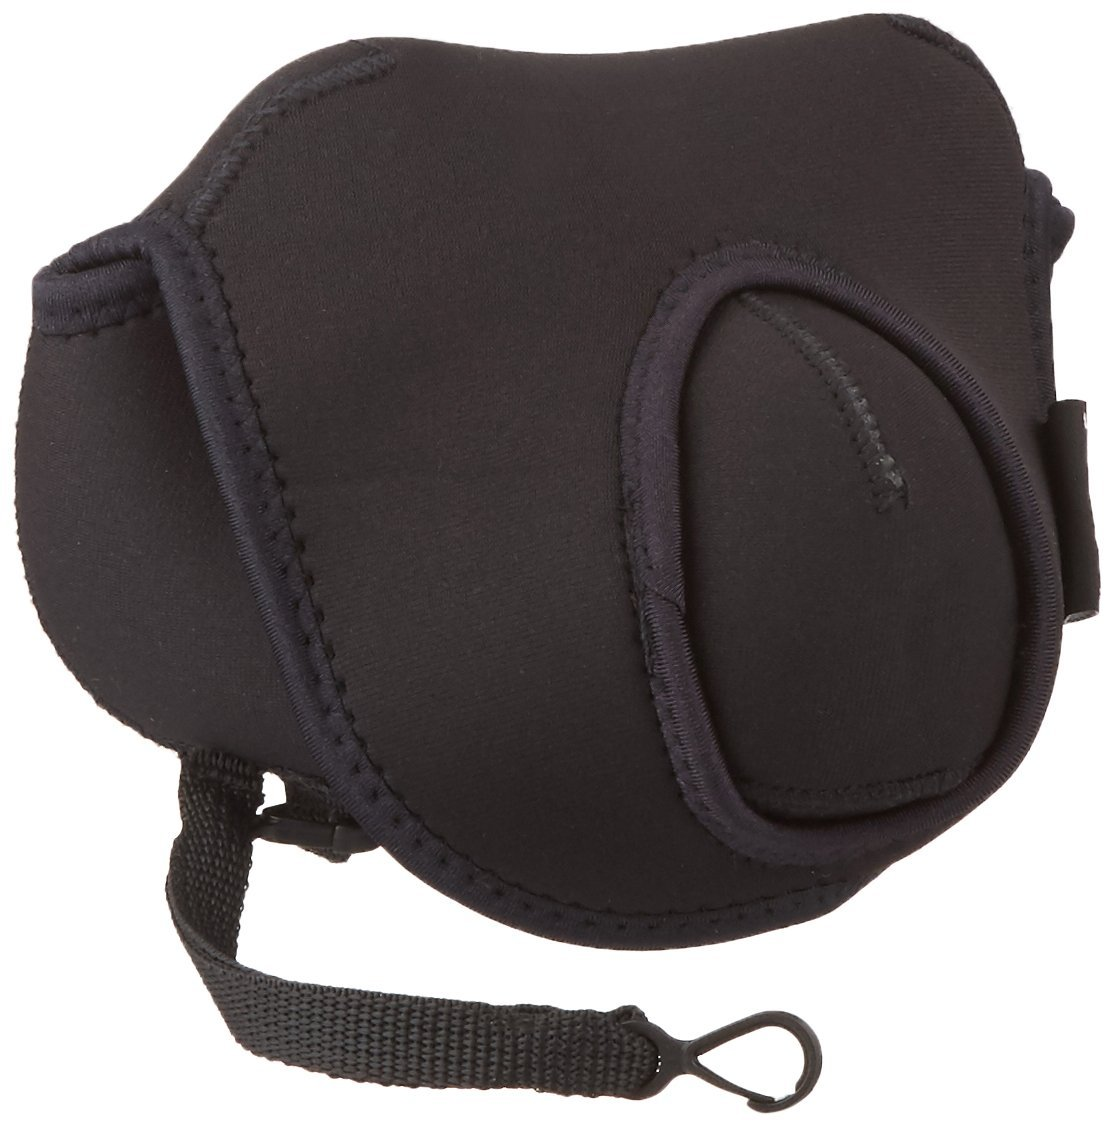 Zing BLACK 501-101 Standard Neoprene Camera Case for DSLR Cameras with Small Prime or 18-55mm Lenses